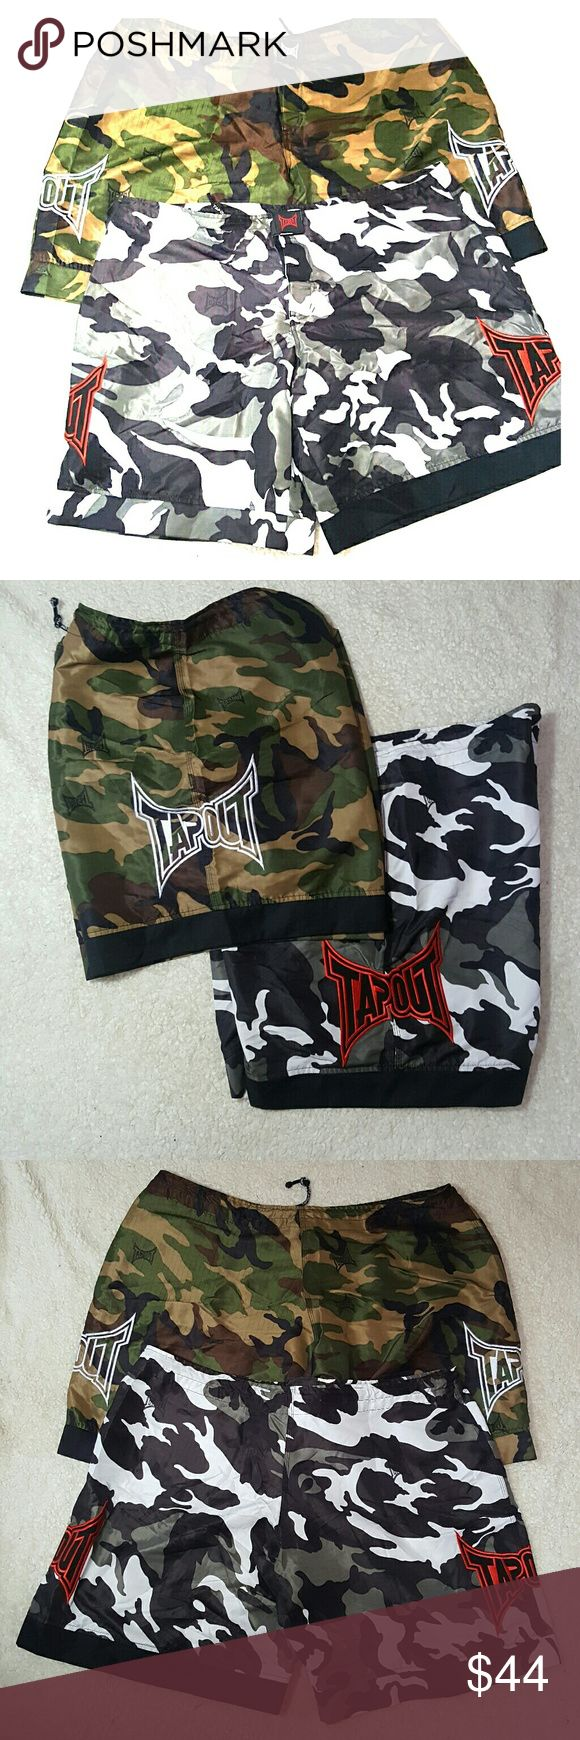 Lot of 2- TAPOUT MMA Wrestling Shorts Size 42 Camo Lot of 2 TAPOUT MMA shorts - Size 42 waist. Both camo design. Drawstring waist with velcro closure. Great condition, hardly worn. TAPOUT Shorts Athletic